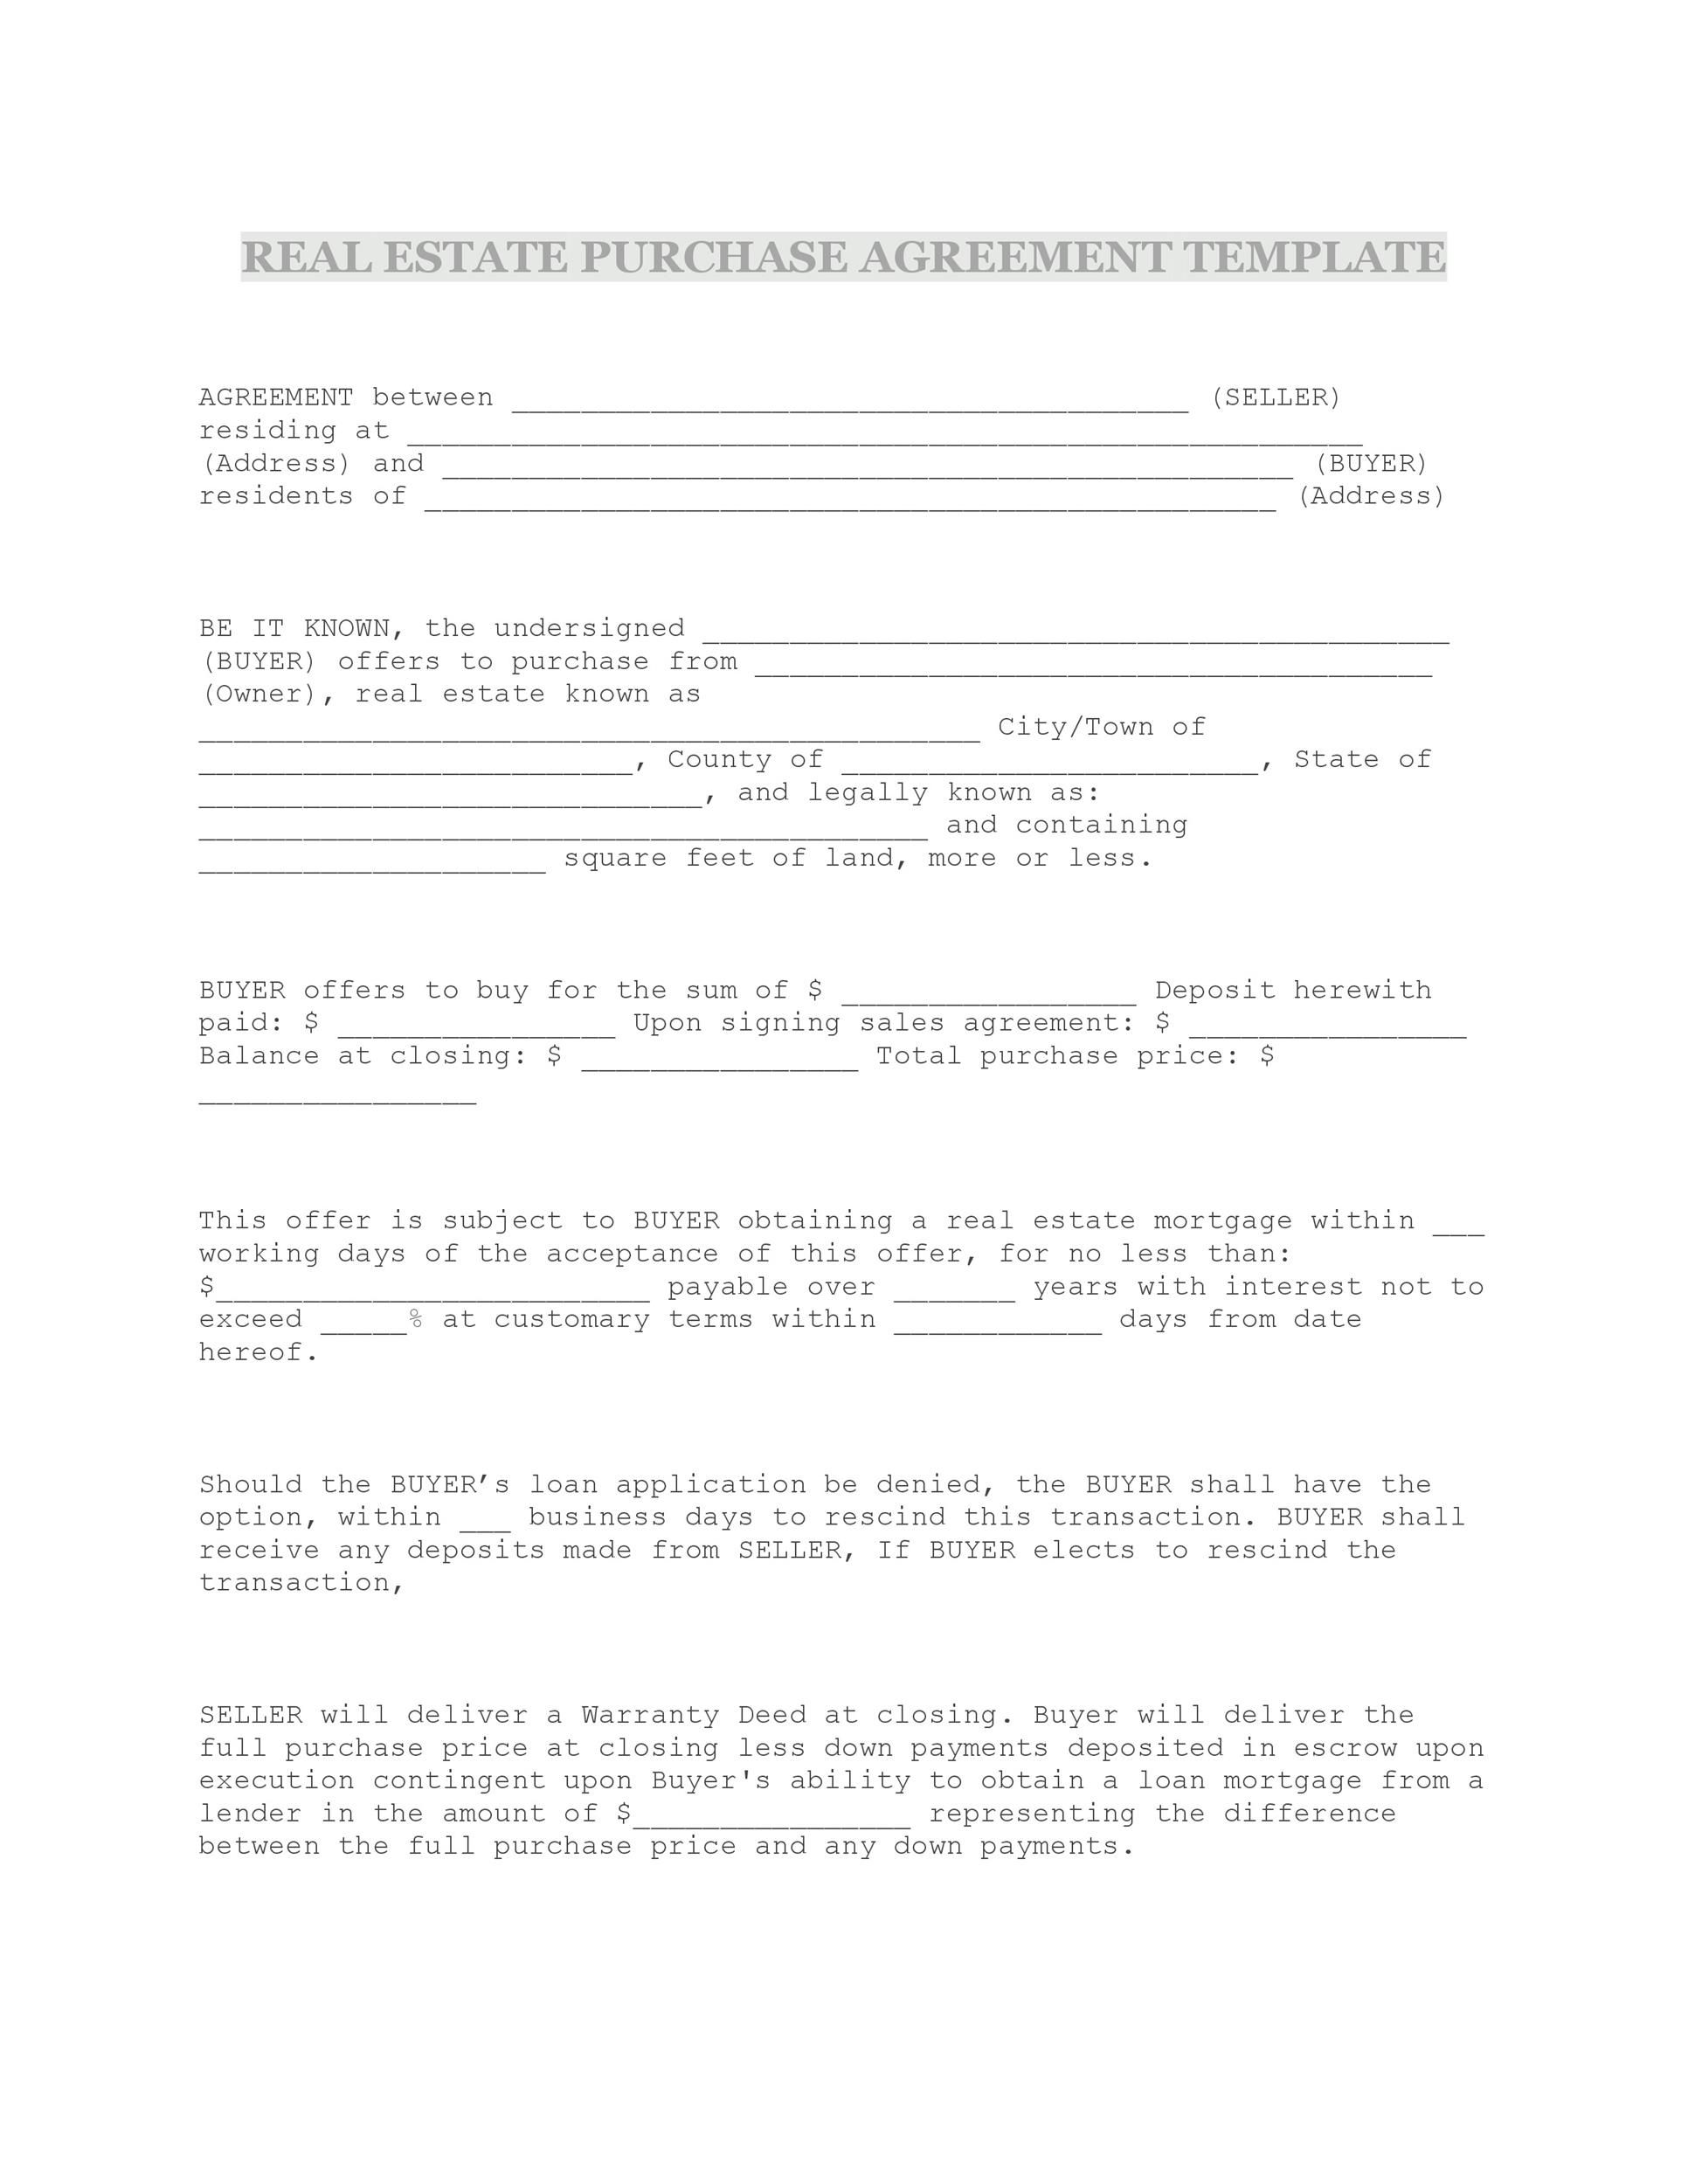 007 Rare Simple Real Estate Buy Sell Agreement Template High Resolution  Free Purchase Form OhioFull